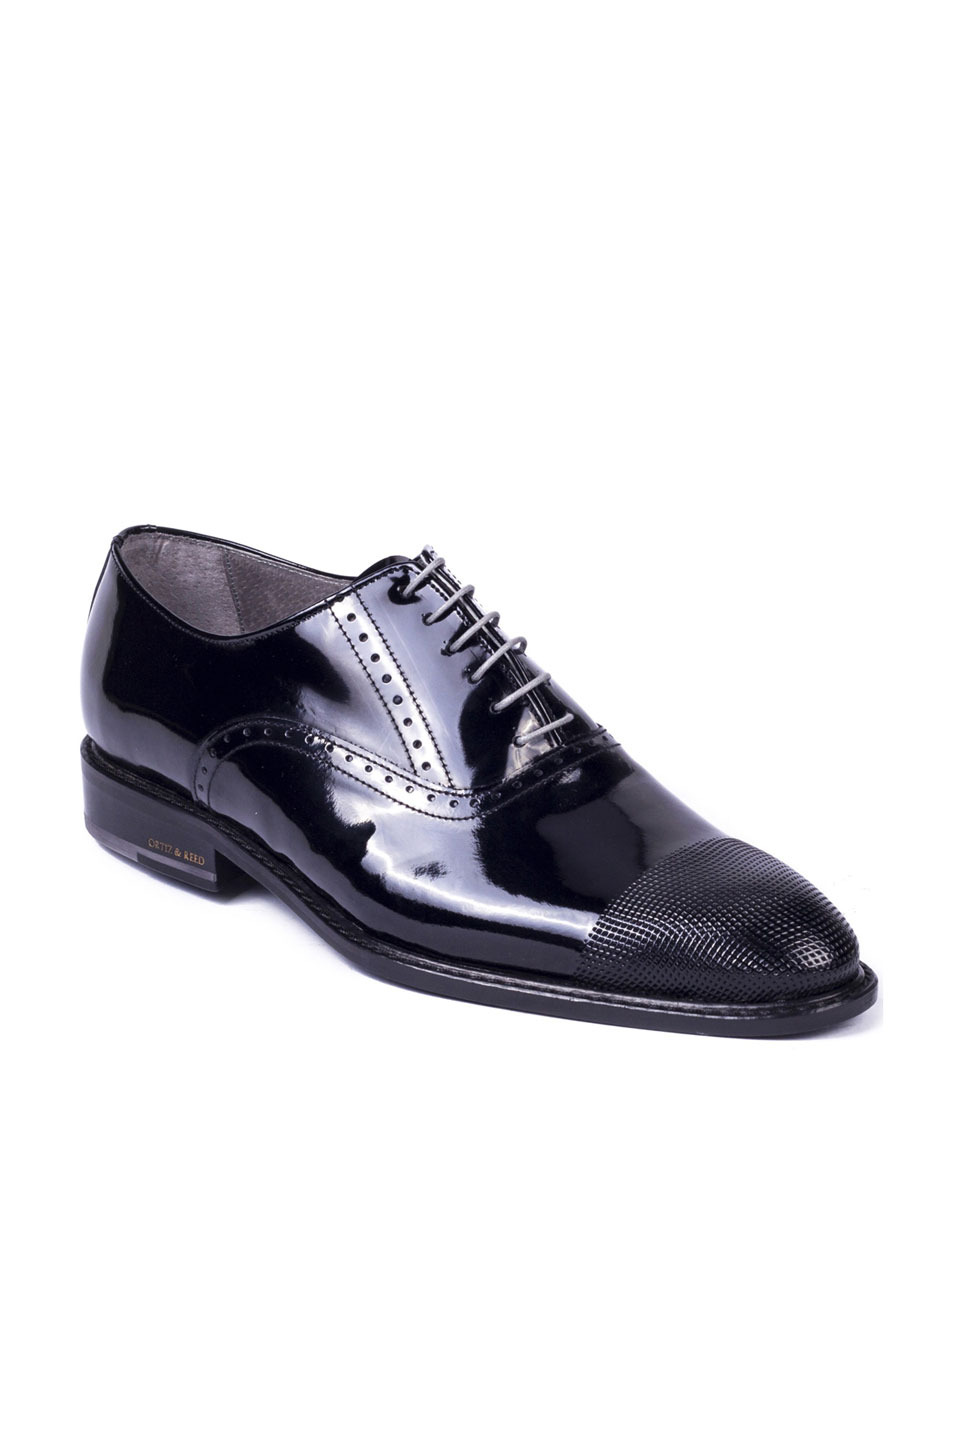 Chaser Oxford in Black